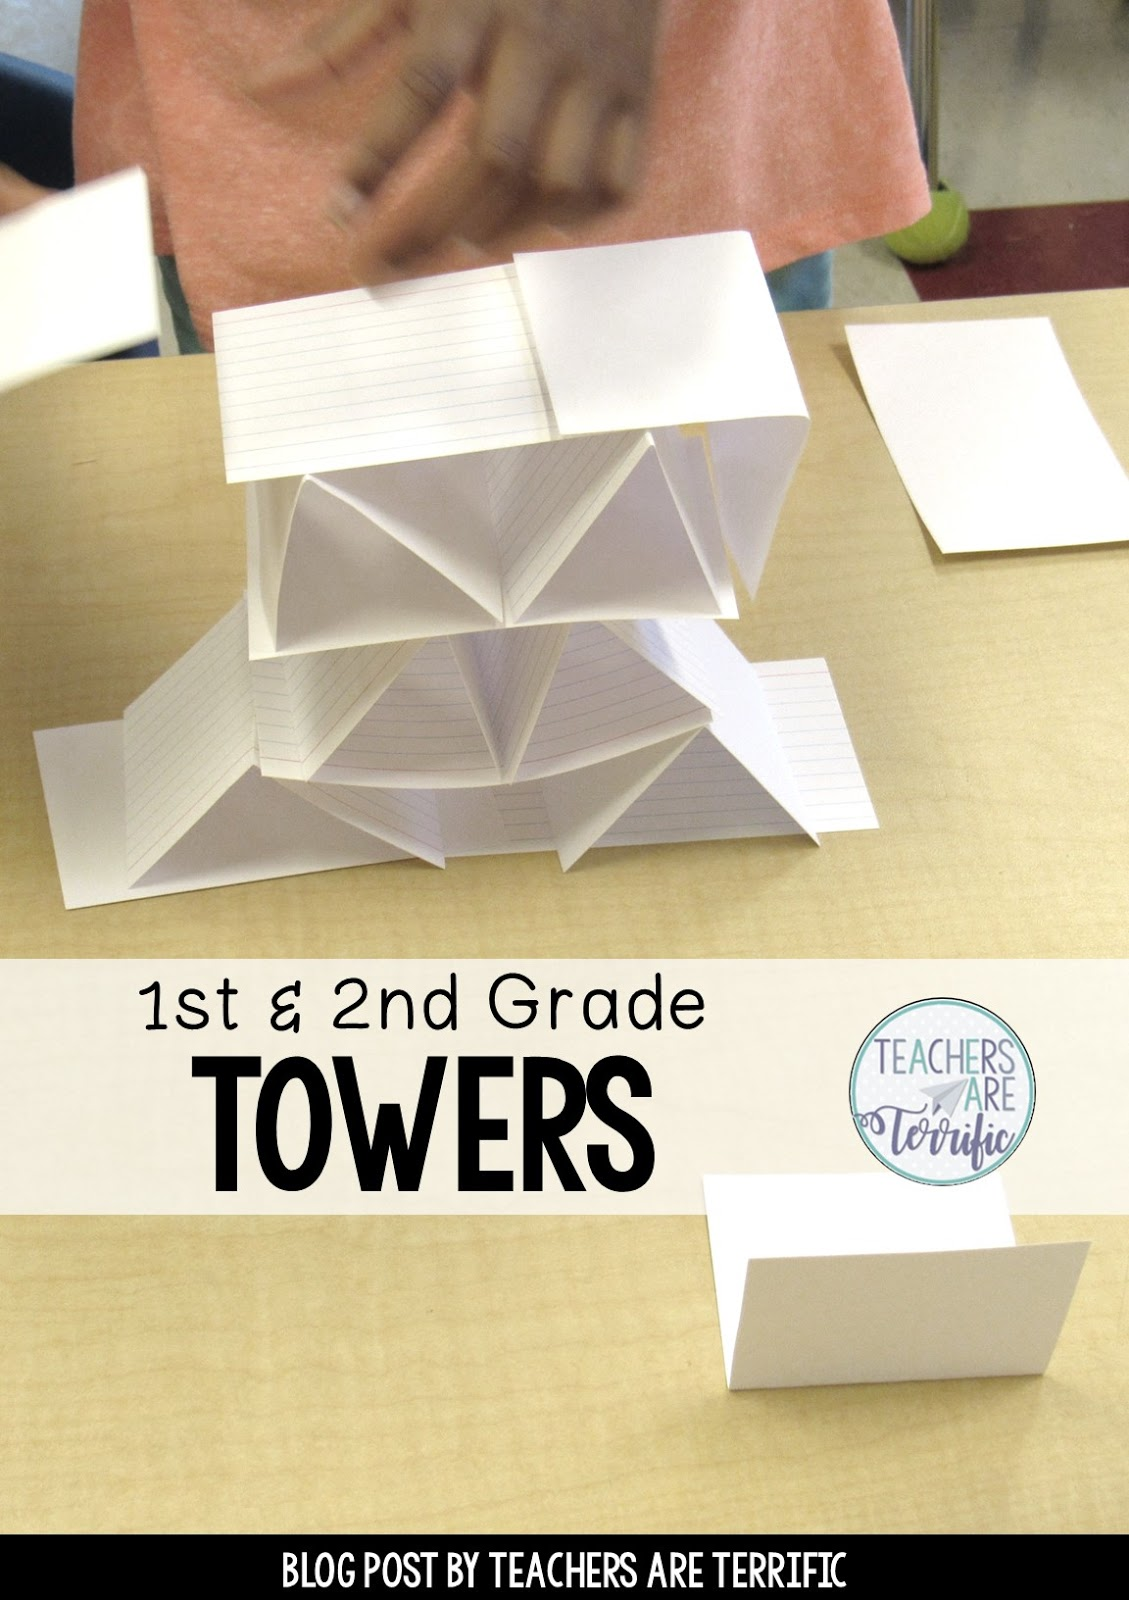 A Fascinating Book Inspires Tower Building Teachers Are Terrific